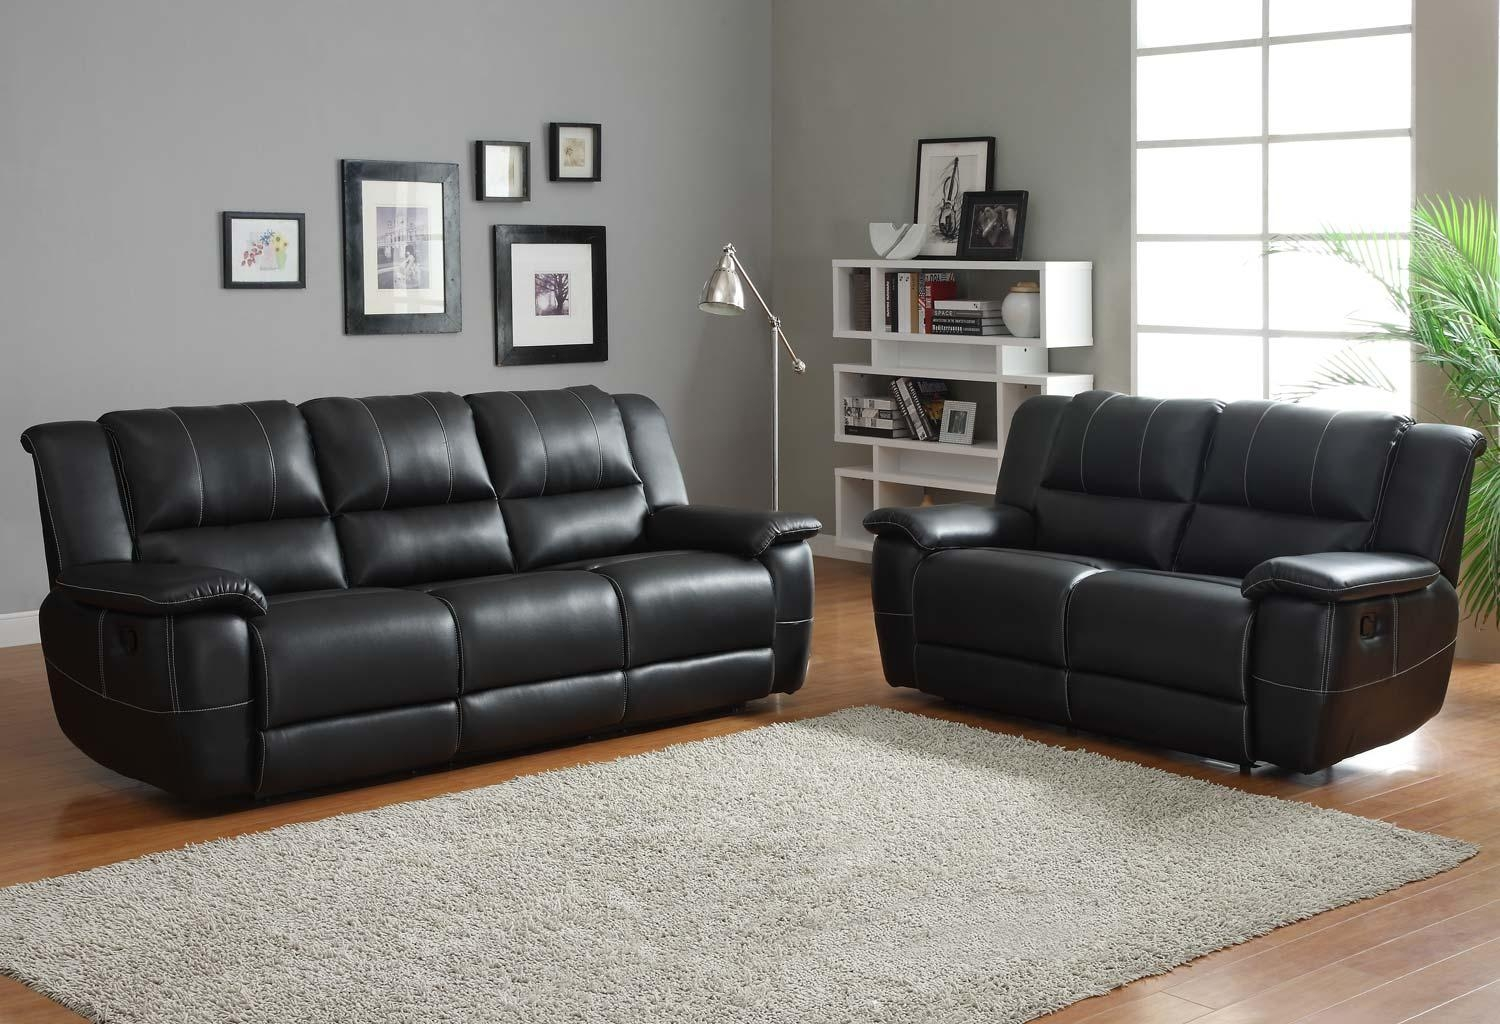 20 Best Contemporary Black Leather Sofas Sofa Ideas